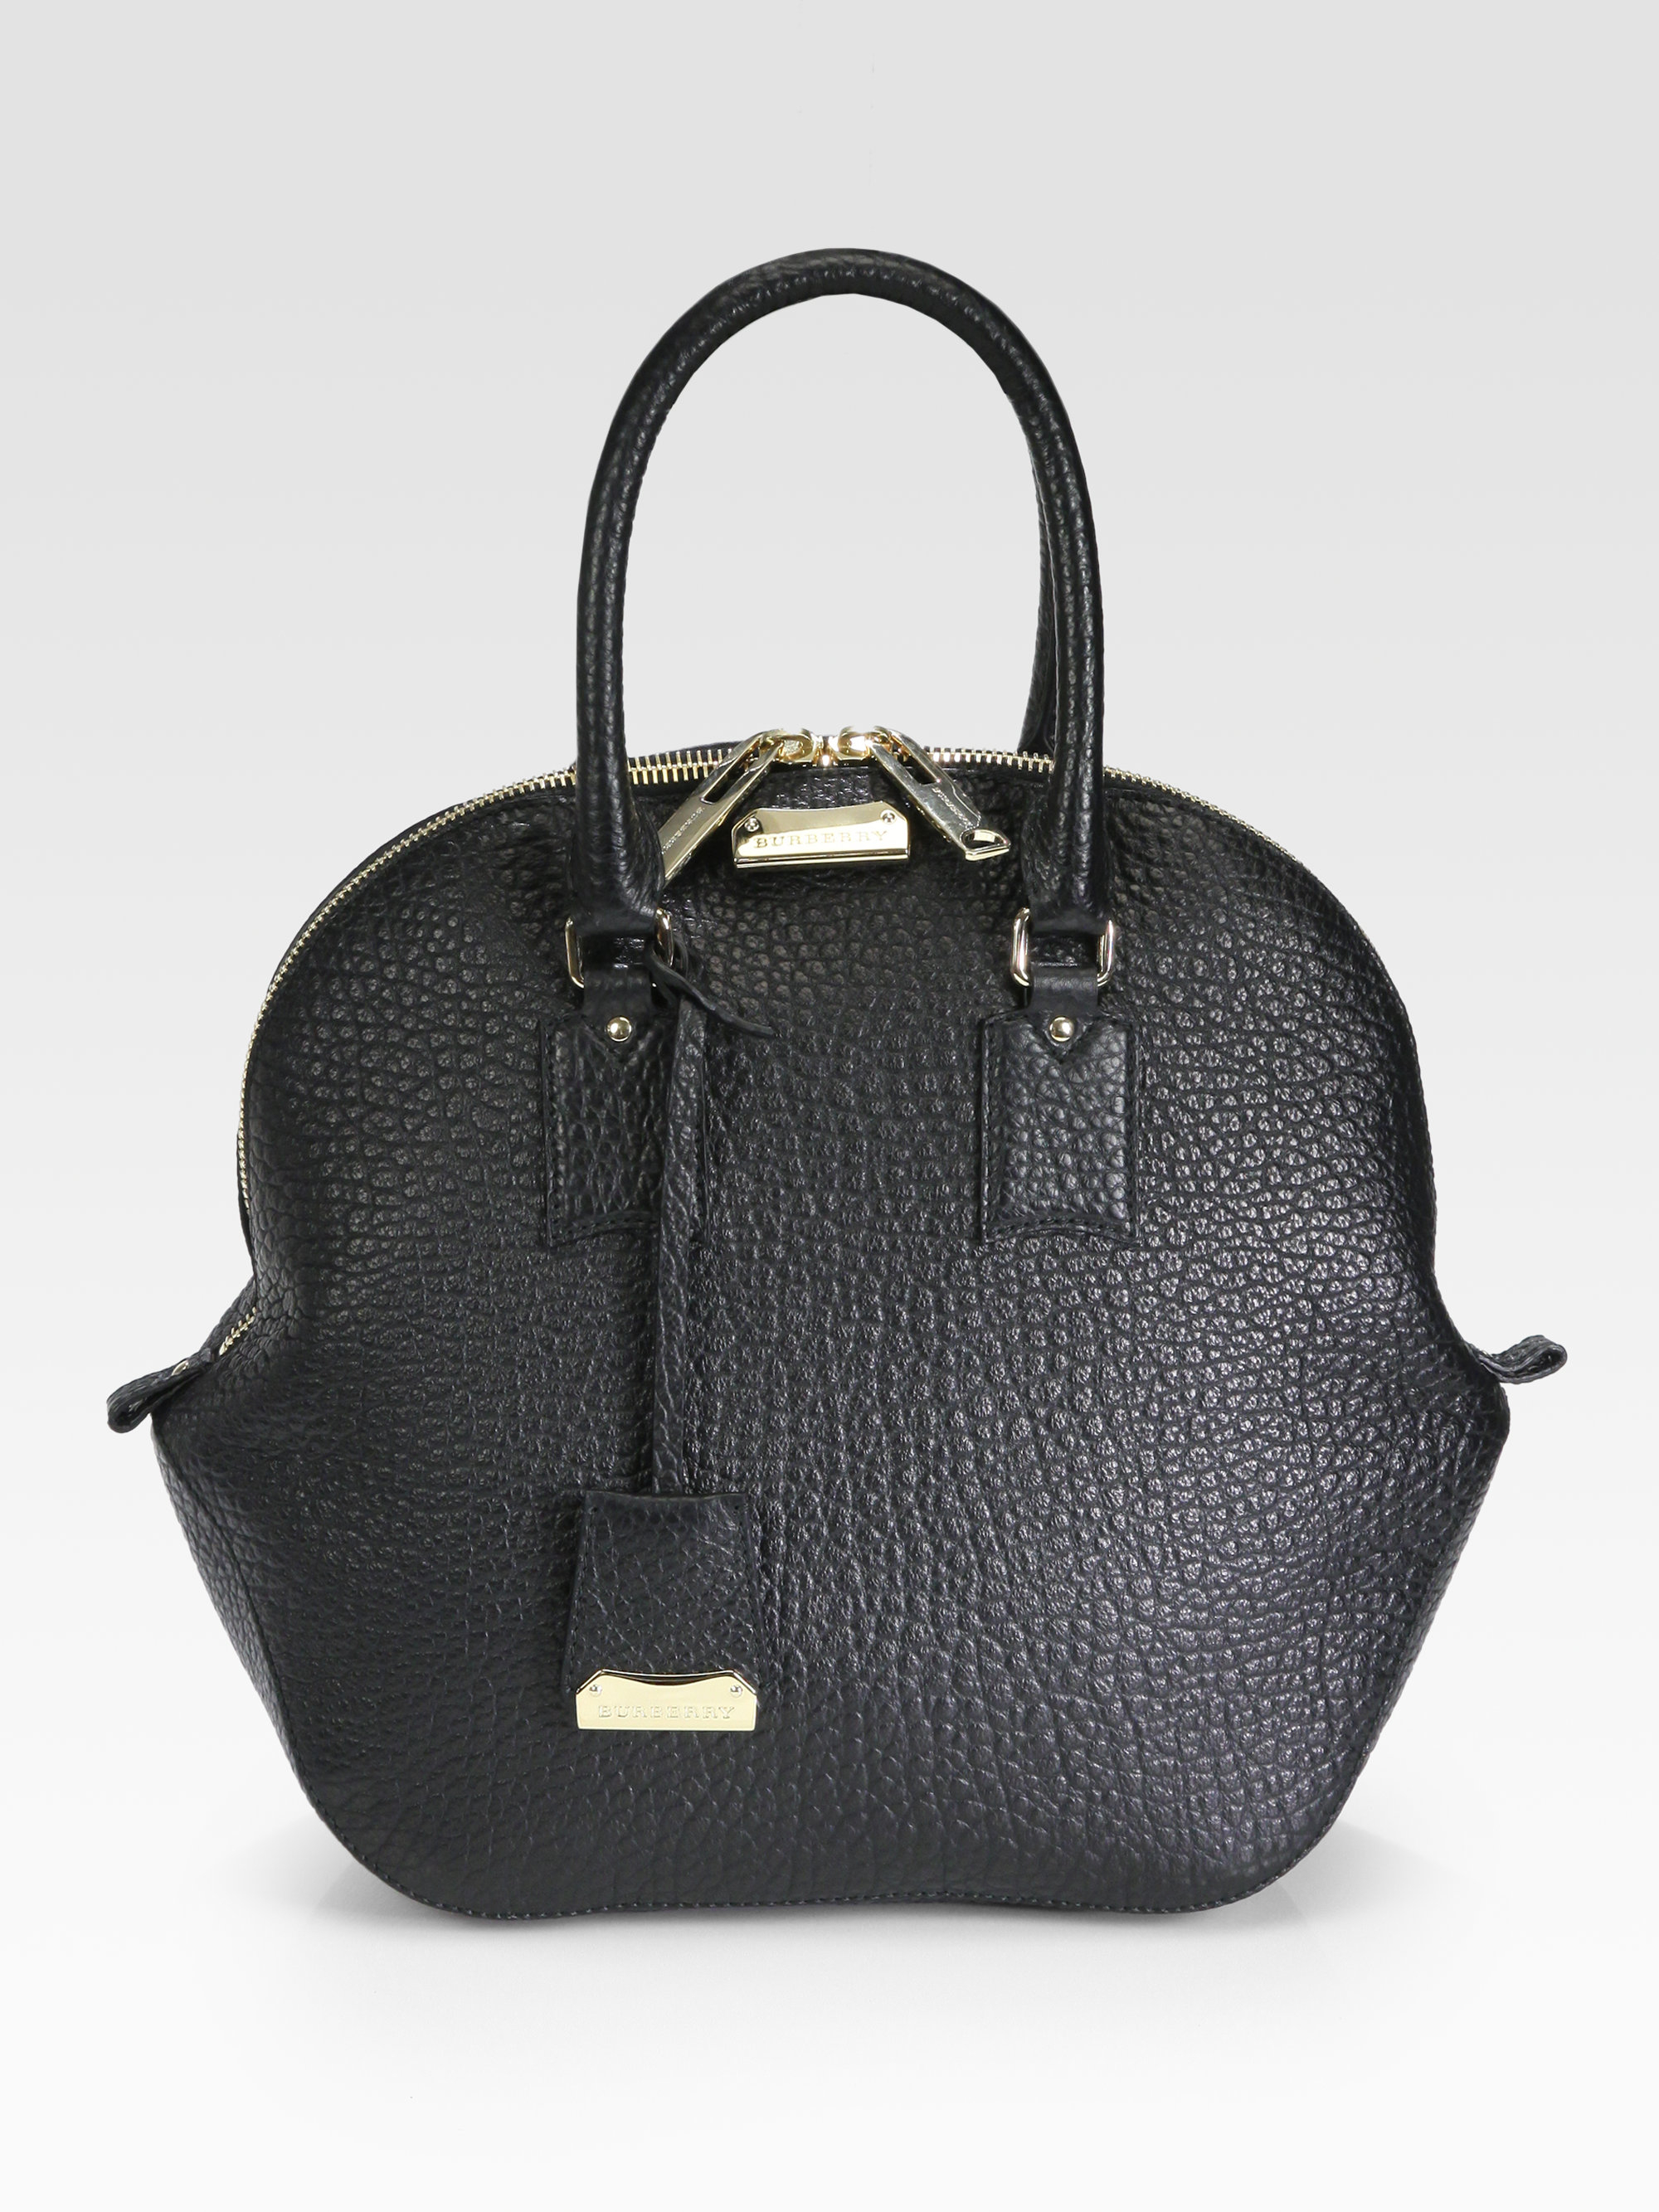 c8173d25fe549 Burberry Bag Black   Stanford Center for Opportunity Policy in Education